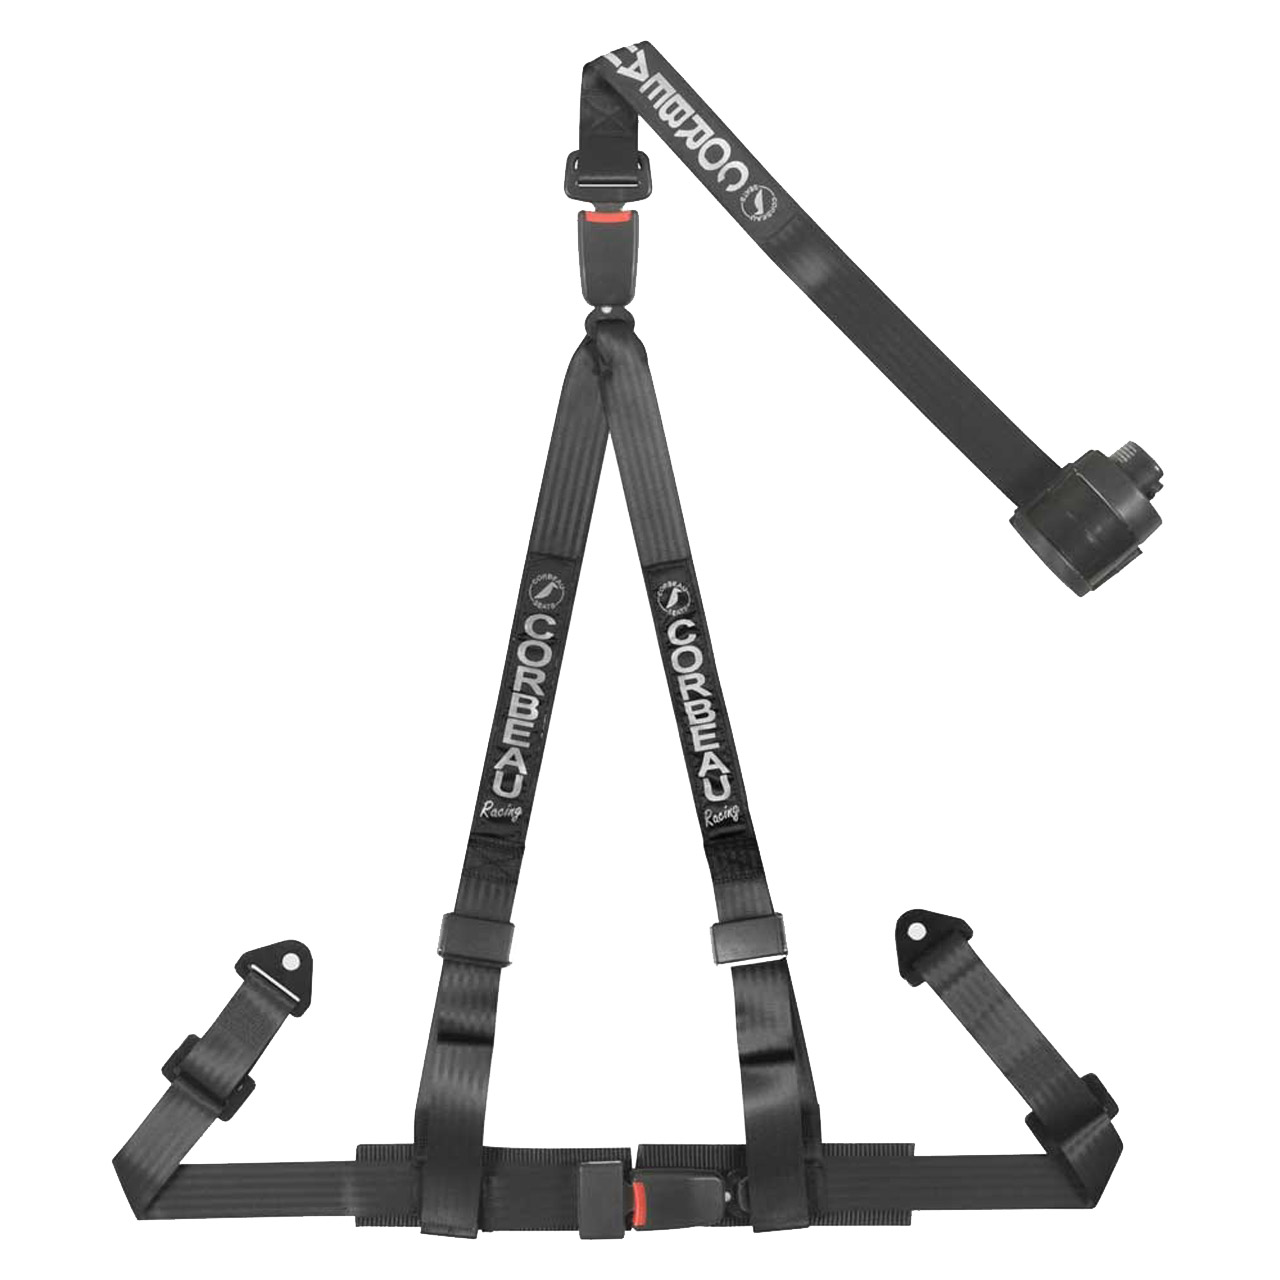 Corbeau 3 Point Retractable Harness in Black